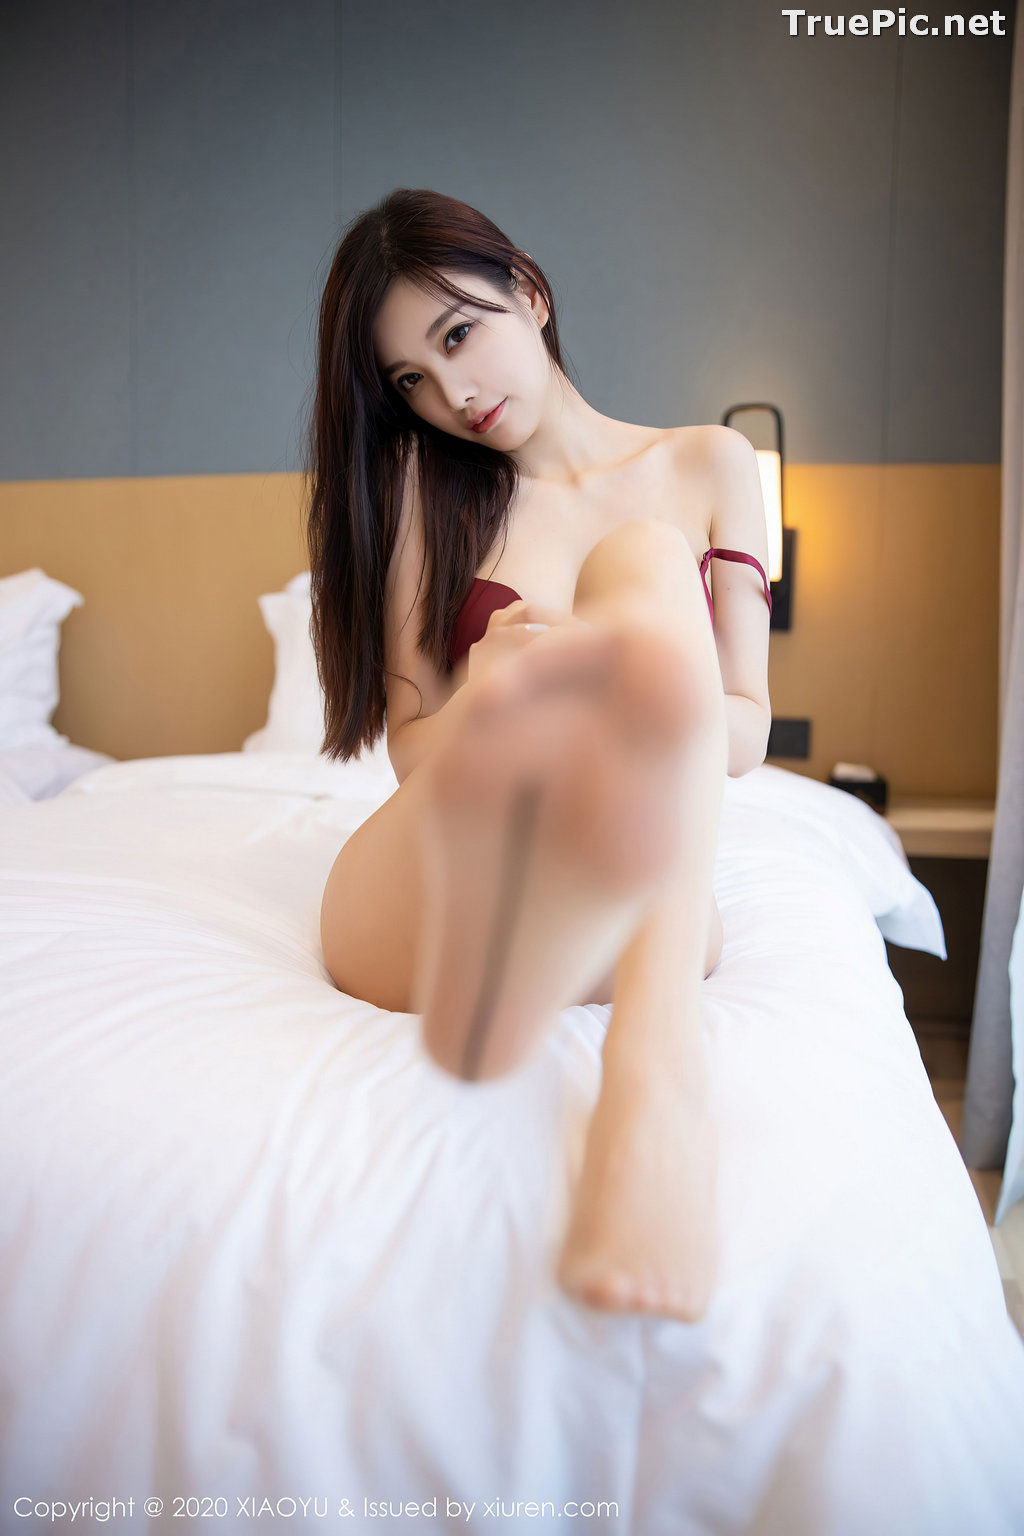 Image XiaoYu Vol.414 - Chinese Model - Yang Chen Chen (杨晨晨sugar) - Sexy Fitness Girl - TruePic.net - Picture-46